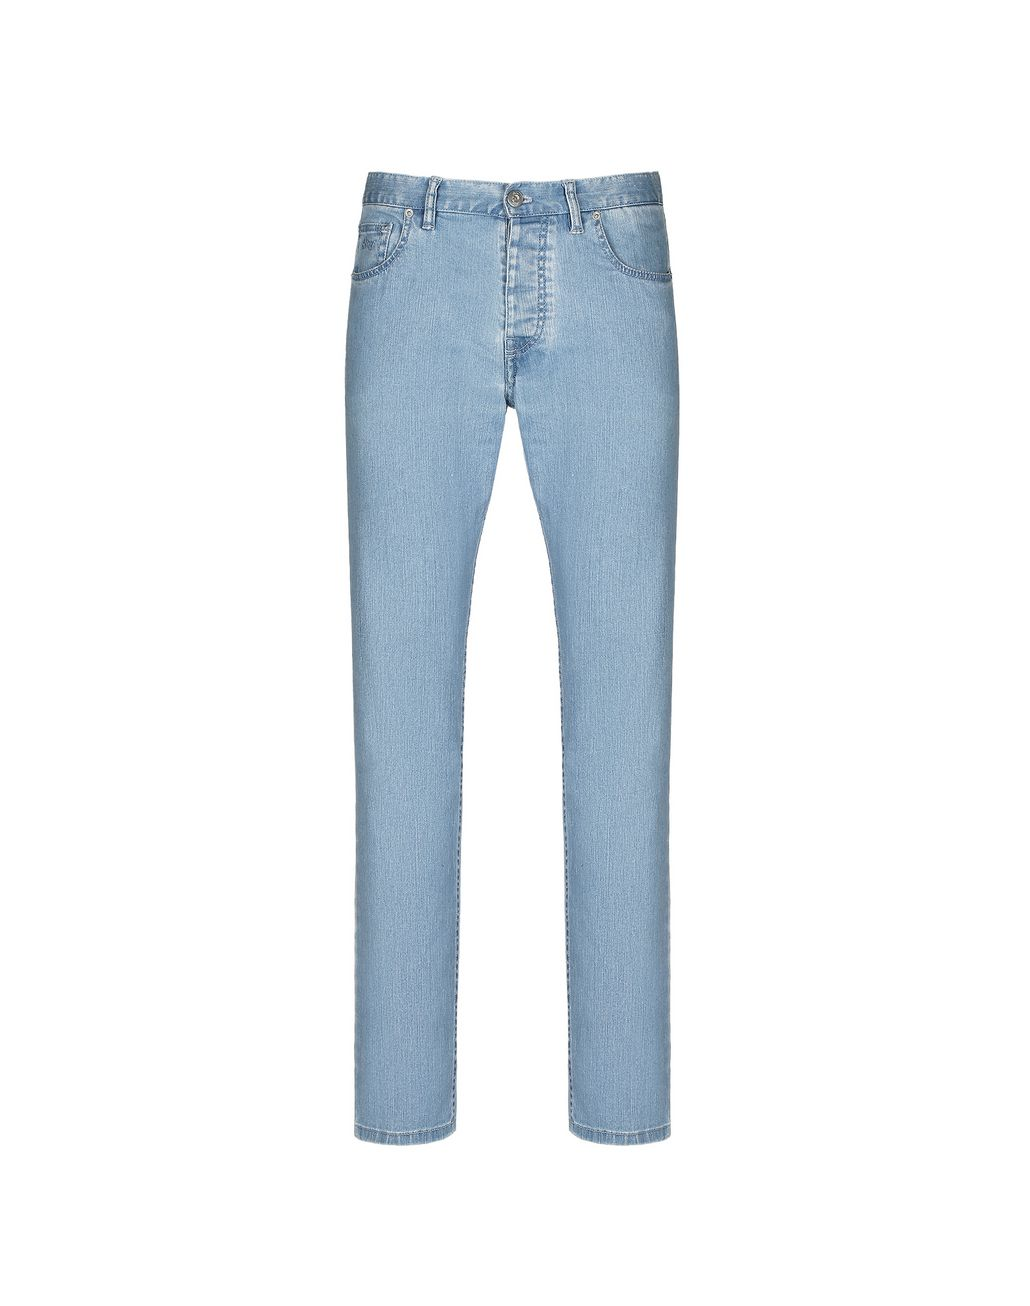 BRIONI Light Blue Denim Trousers Trousers Man f